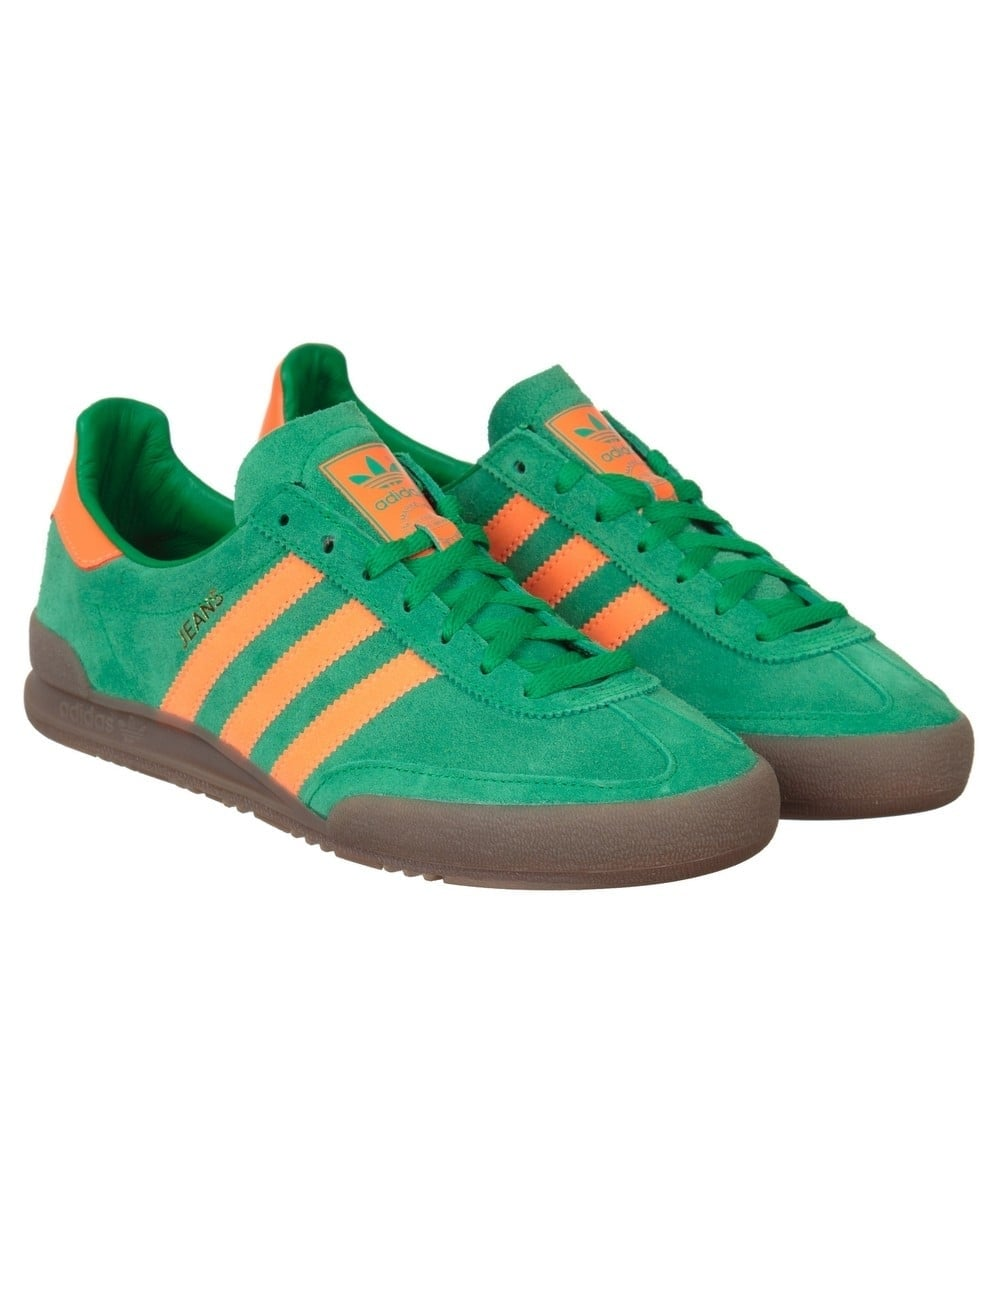 adidas jeans trainers green